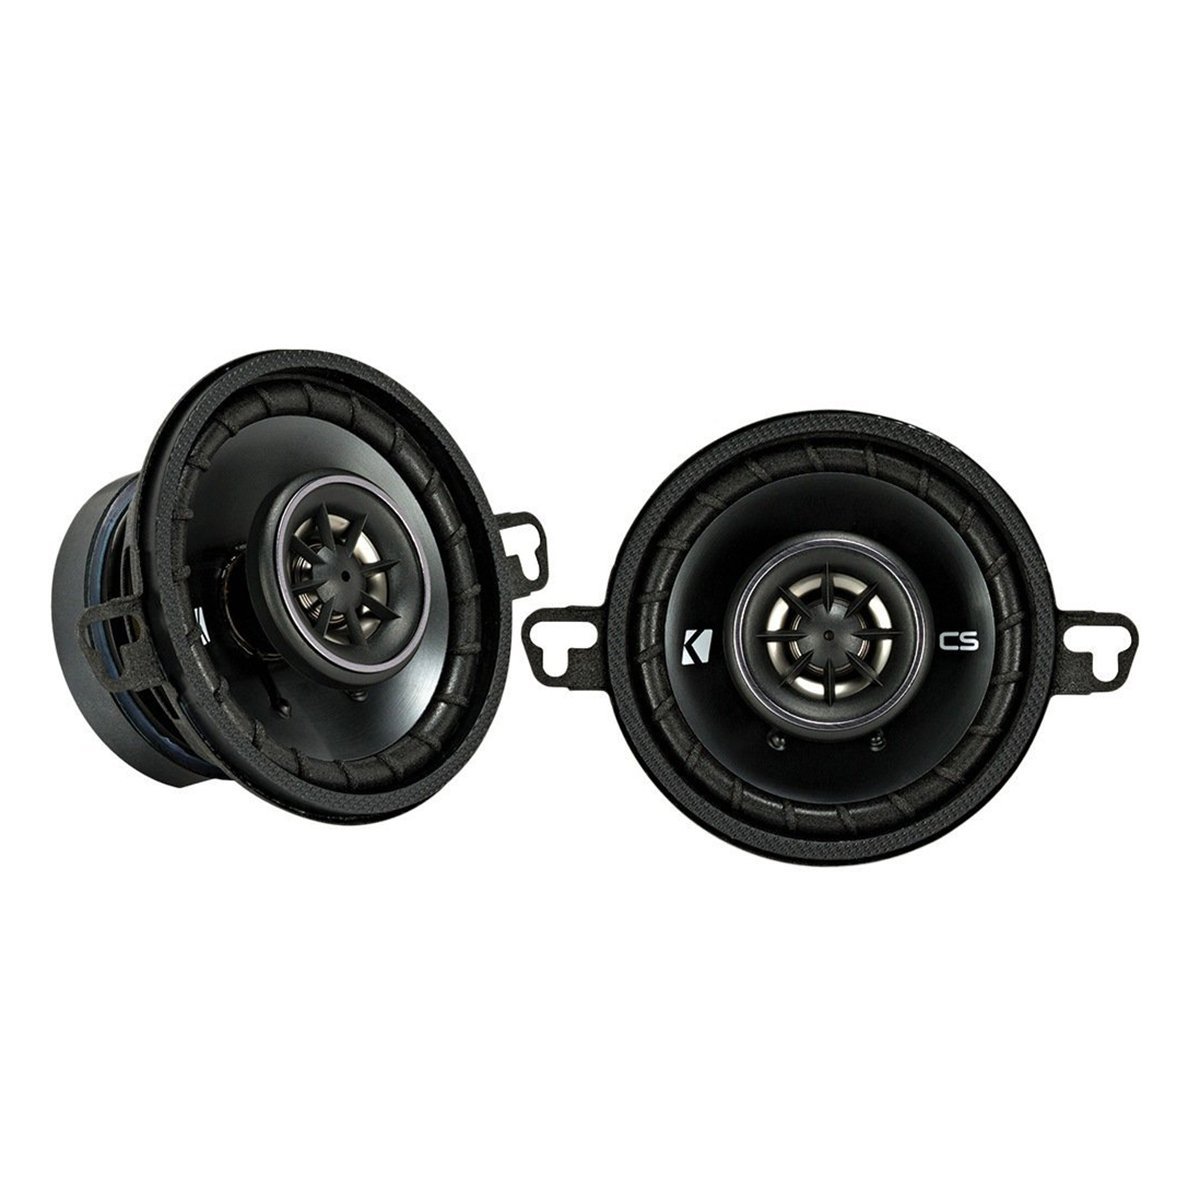 Kicker CSC35 90W 3.5 Inch 2-Way Coaxial Car Audio Speakers (Pair) | 43CSC354